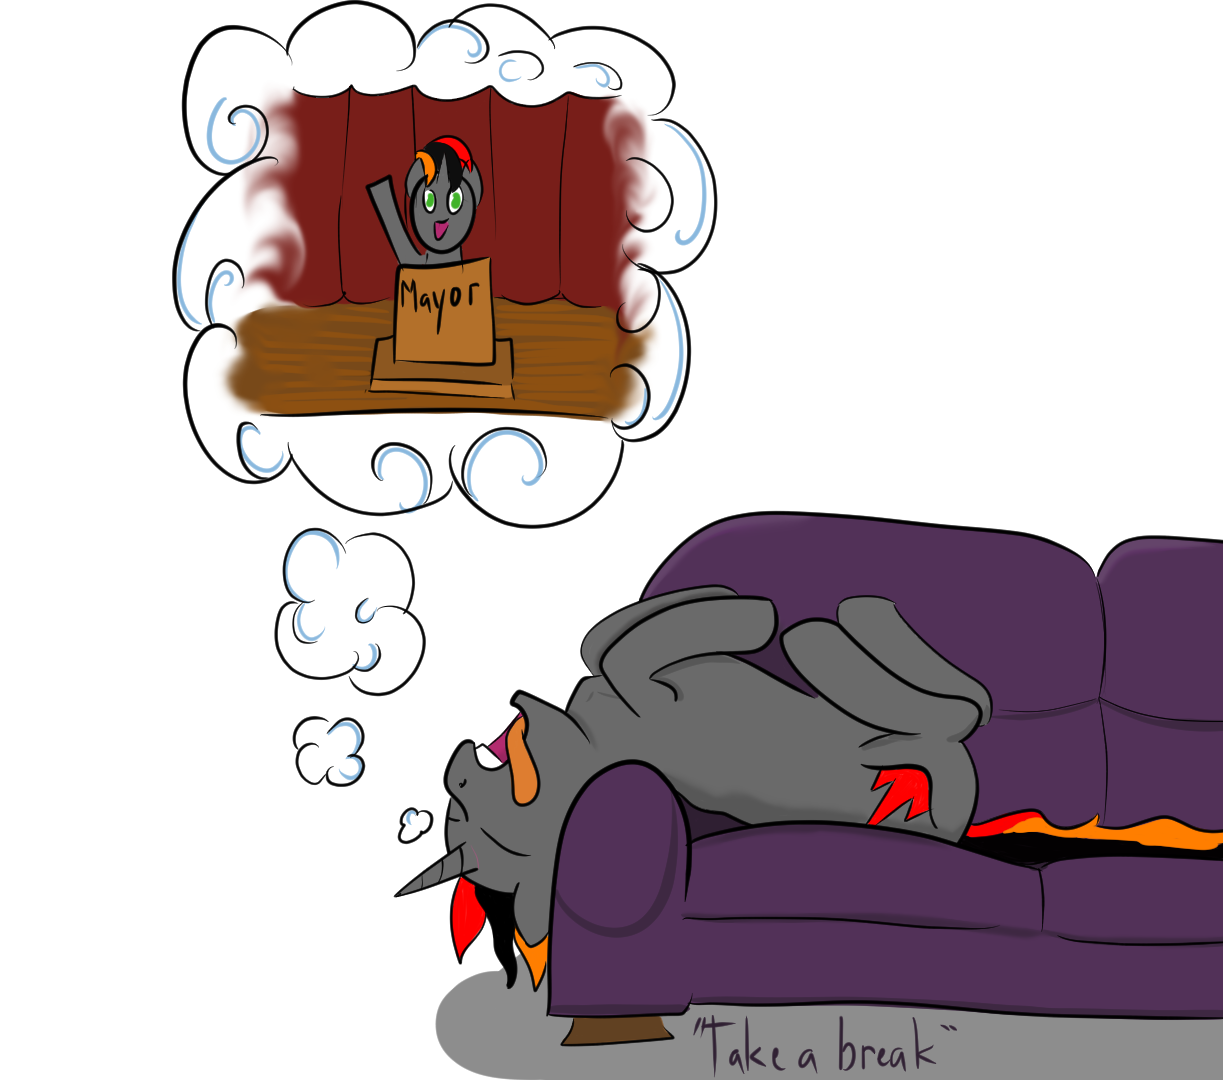 Take a break from your dreams